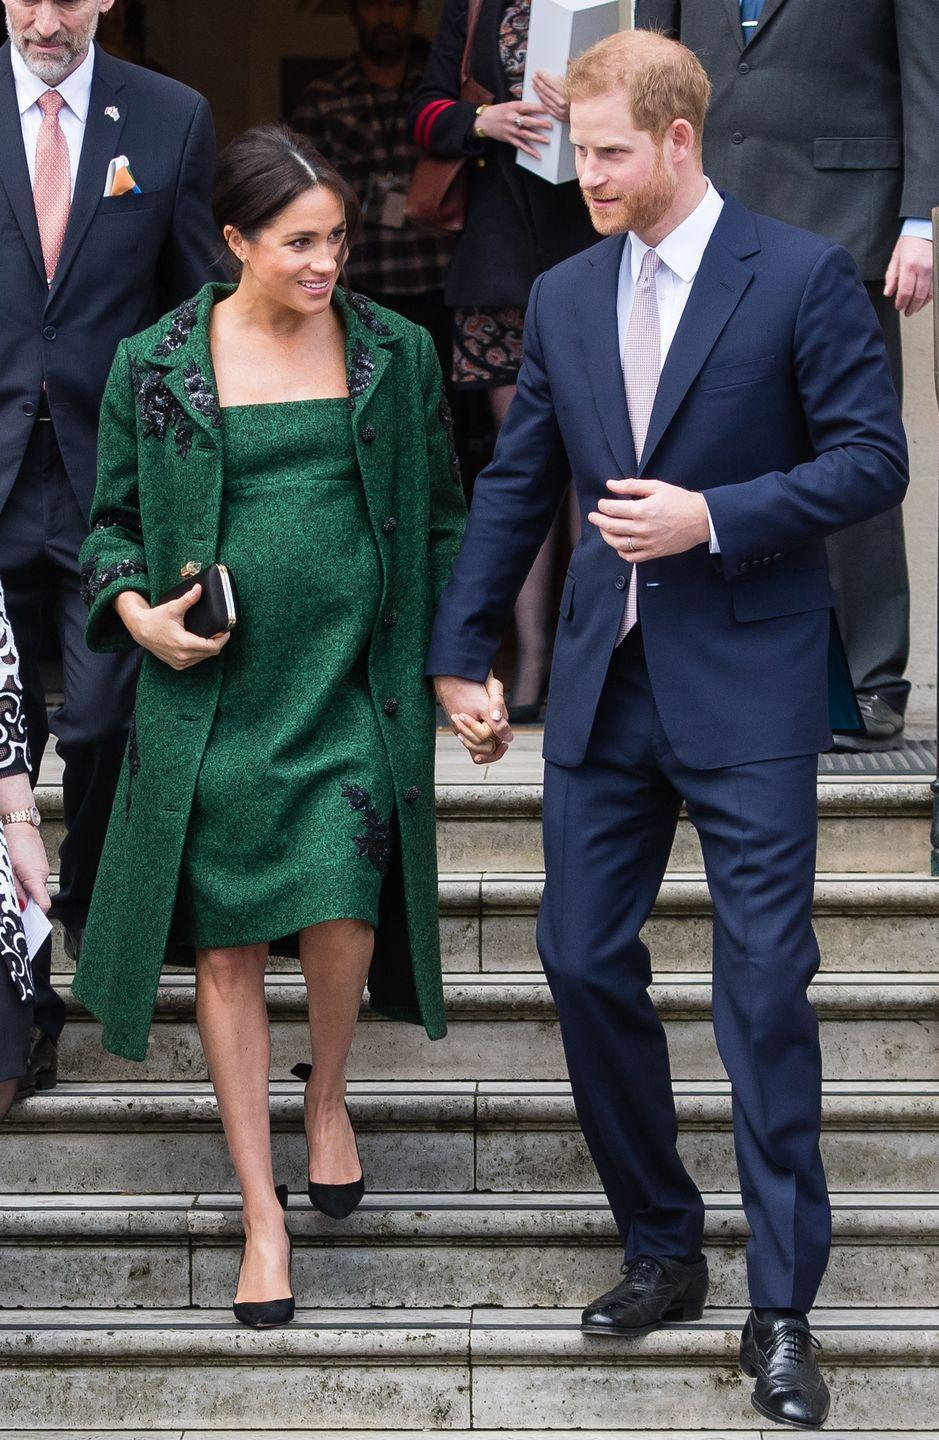 "<p>For the Duke and Duchess's visit to Canada House on Commonwealth Day, Meghan wore a dark green jacket and dress with sequin detailing that was <a href=""https://www.net-a-porter.com/us/en/Shop/Designers/Erdem?"" rel=""nofollow noopener"" target=""_blank"" data-ylk=""slk:custom made by Erdem"" class=""link rapid-noclick-resp"">custom made by Erdem</a>, <a href=""https://www.gettyimages.com/detail/news-photo/prince-harry-duke-of-sussex-and-meghan-duchess-of-sussex-news-photo/1135098814"" rel=""nofollow noopener"" target=""_blank"" data-ylk=""slk:Aquazzura heels"" class=""link rapid-noclick-resp"">Aquazzura heels</a> and a <a href=""https://www.townandcountrymag.com/style/fashion-trends/g3272/meghan-markle-preppy-style/?slide=67"" rel=""nofollow noopener"" target=""_blank"" data-ylk=""slk:Givenchy clutch"" class=""link rapid-noclick-resp"">Givenchy clutch</a>. </p><p><a class=""link rapid-noclick-resp"" href=""https://go.redirectingat.com?id=74968X1596630&url=https%3A%2F%2Fshop.nordstrom.com%2Fs%2Faquazzura-deneuve-bow-pointy-toe-pump-women%2F4948641&sref=https%3A%2F%2Fwww.townandcountrymag.com%2Fstyle%2Ffashion-trends%2Fg3272%2Fmeghan-markle-preppy-style%2F"" rel=""nofollow noopener"" target=""_blank"" data-ylk=""slk:Shop Now"">Shop Now</a><em>Deneuve Pumps, Aquazzura, $750</em></p>"